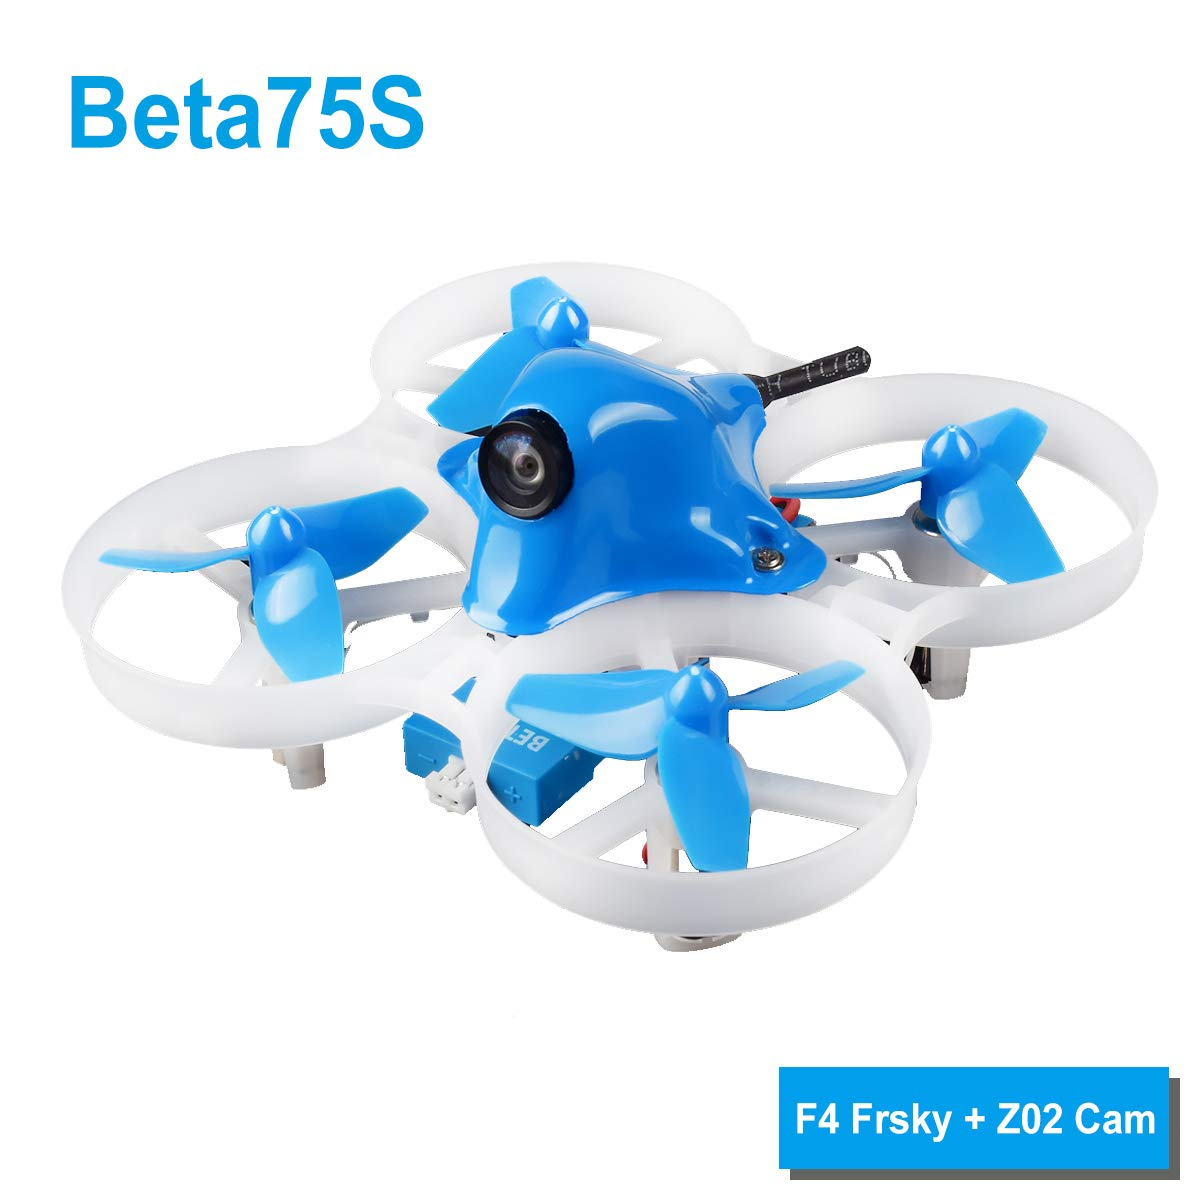 BETAFPV Beta75S Whoop Drone 1S Brushed FPV Quadcopter with F4 FC Frsky Receiver Z02 Camera OSD Smart Audio 8X20 Motor for Tiny&nbs